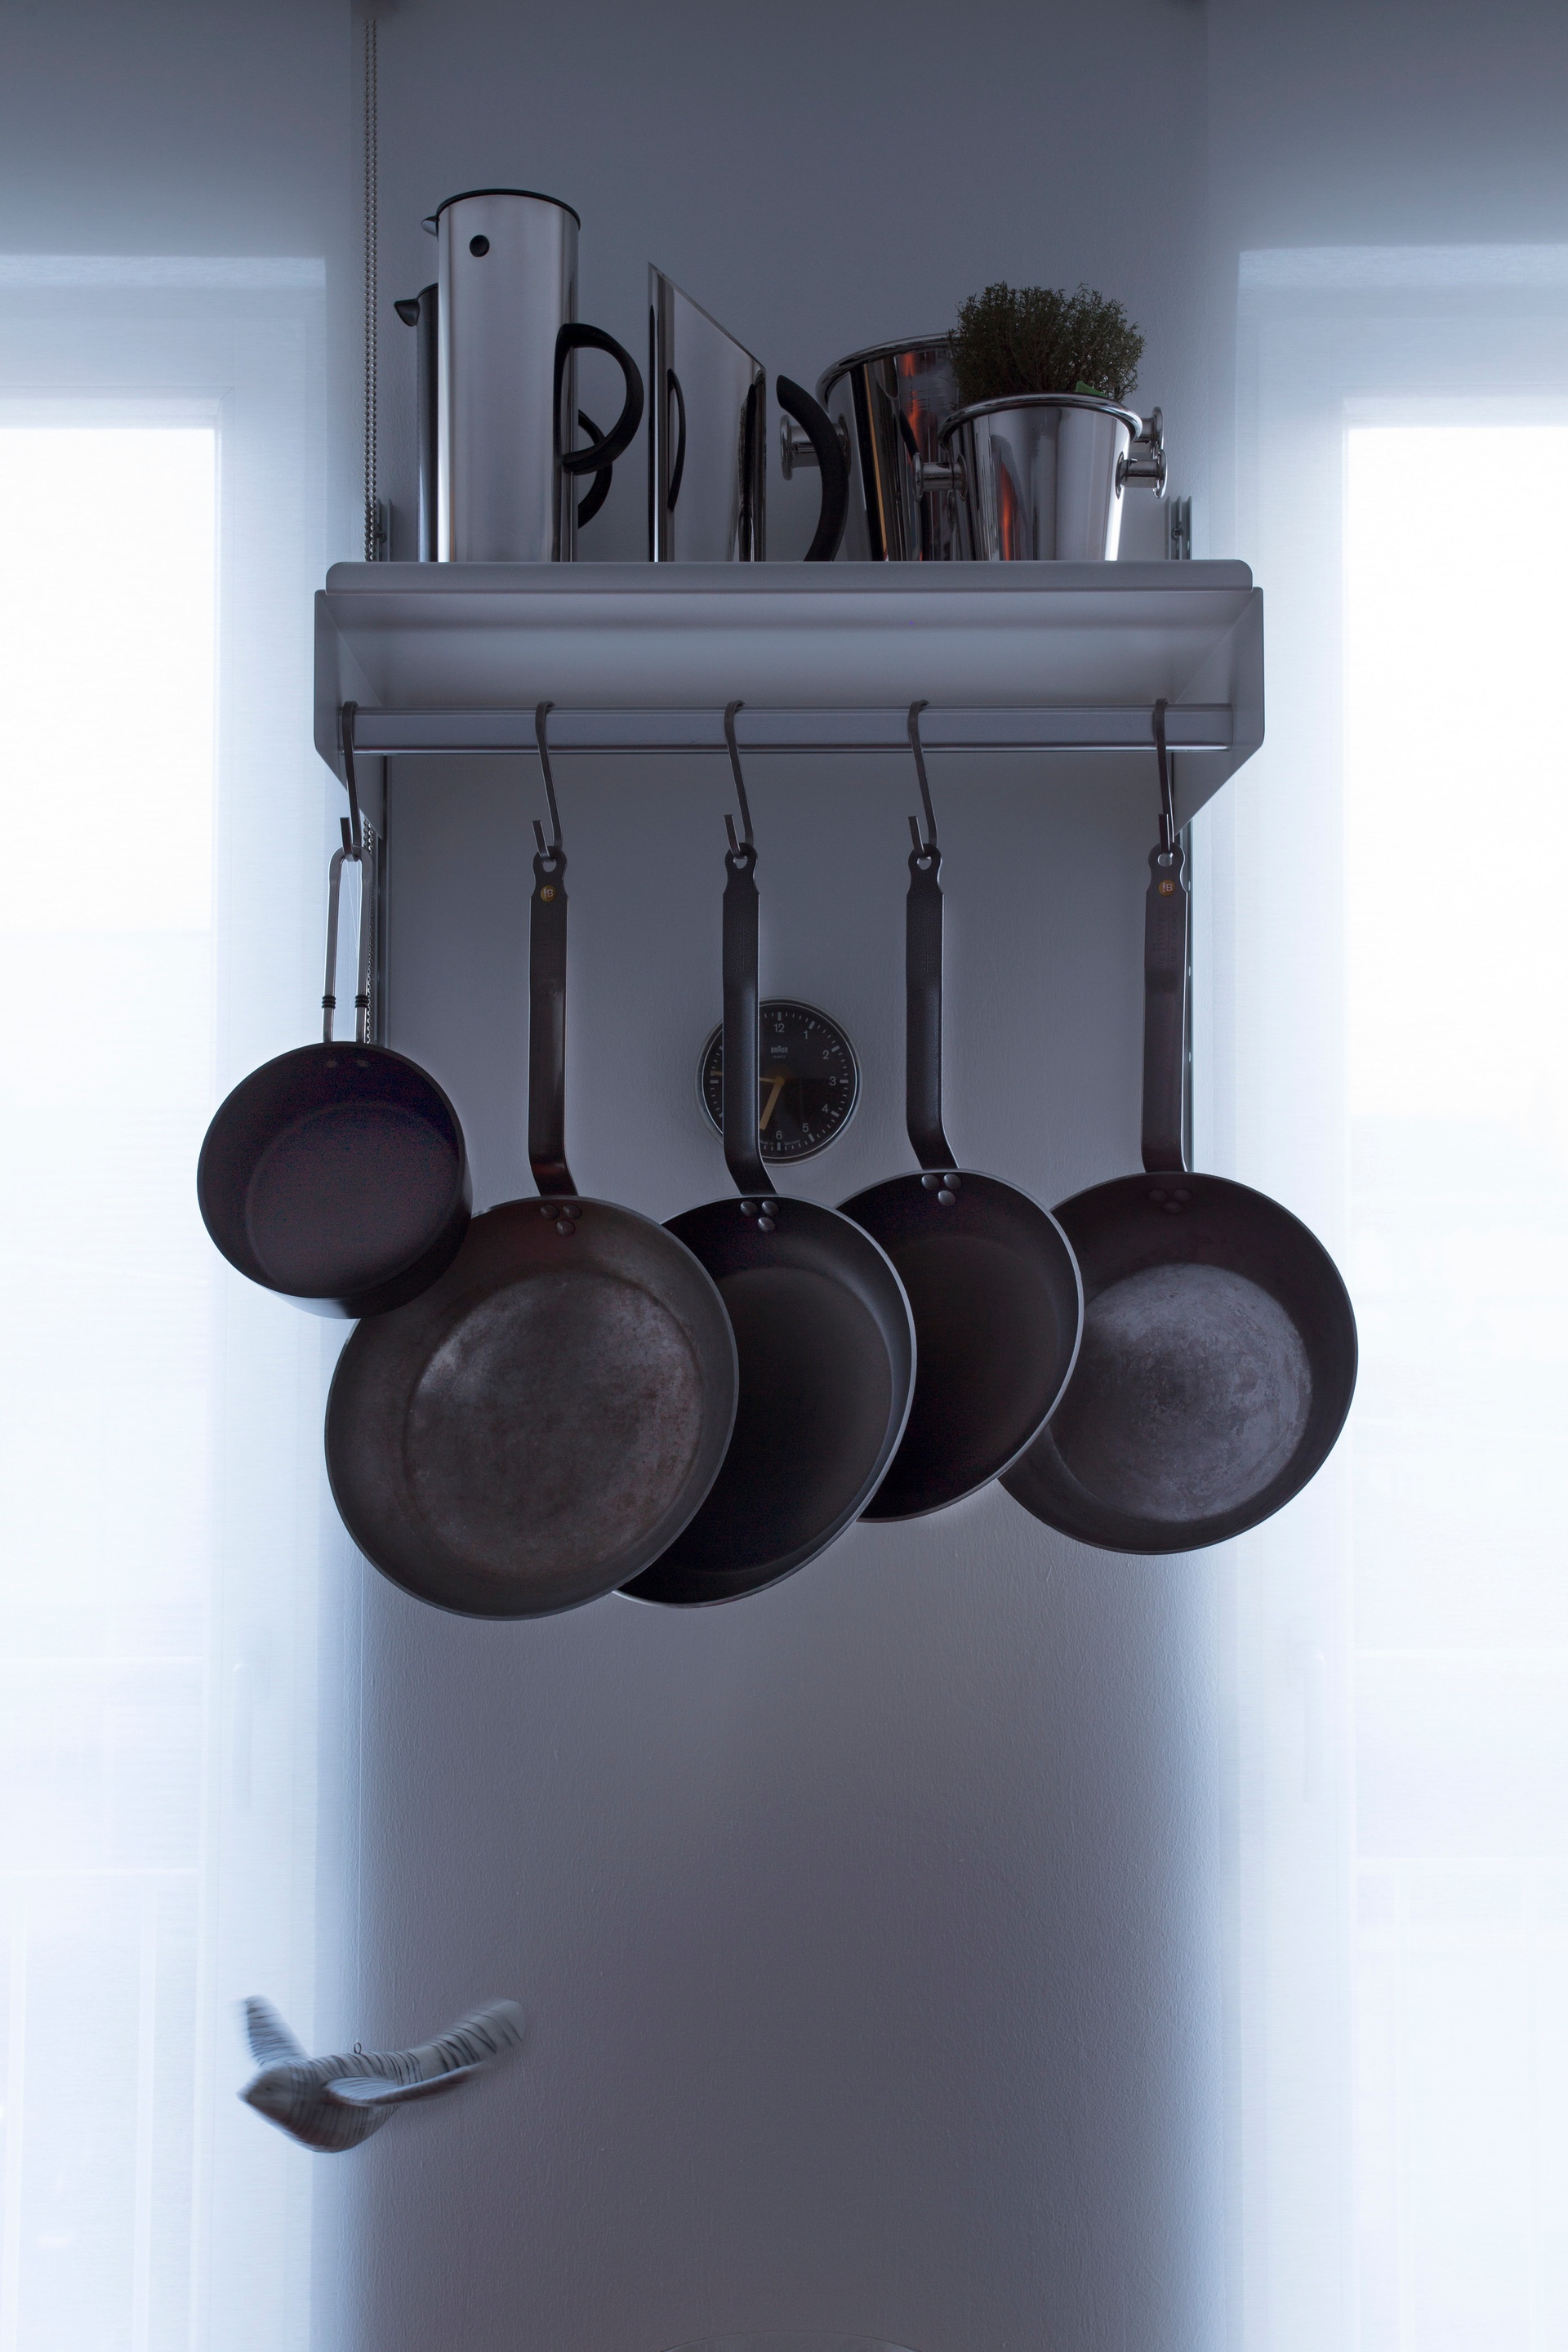 Use our hanging rail for pots and pans. It can be used for coats in other areas of your home too